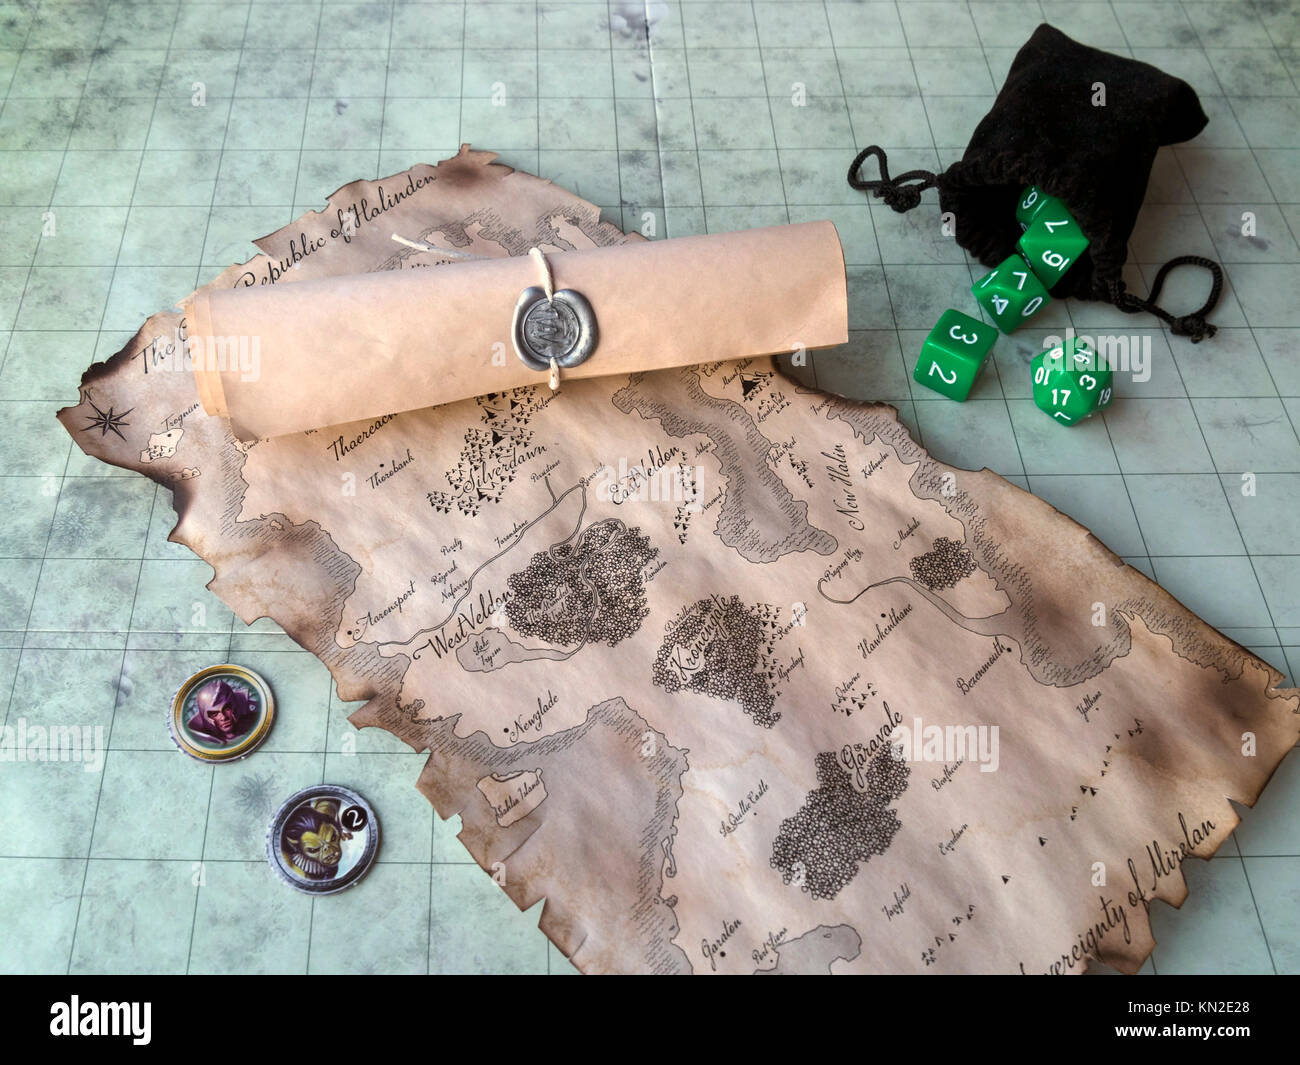 Fantasy roll playing game map with sealed scroll, dice and counters on game board - Stock Image